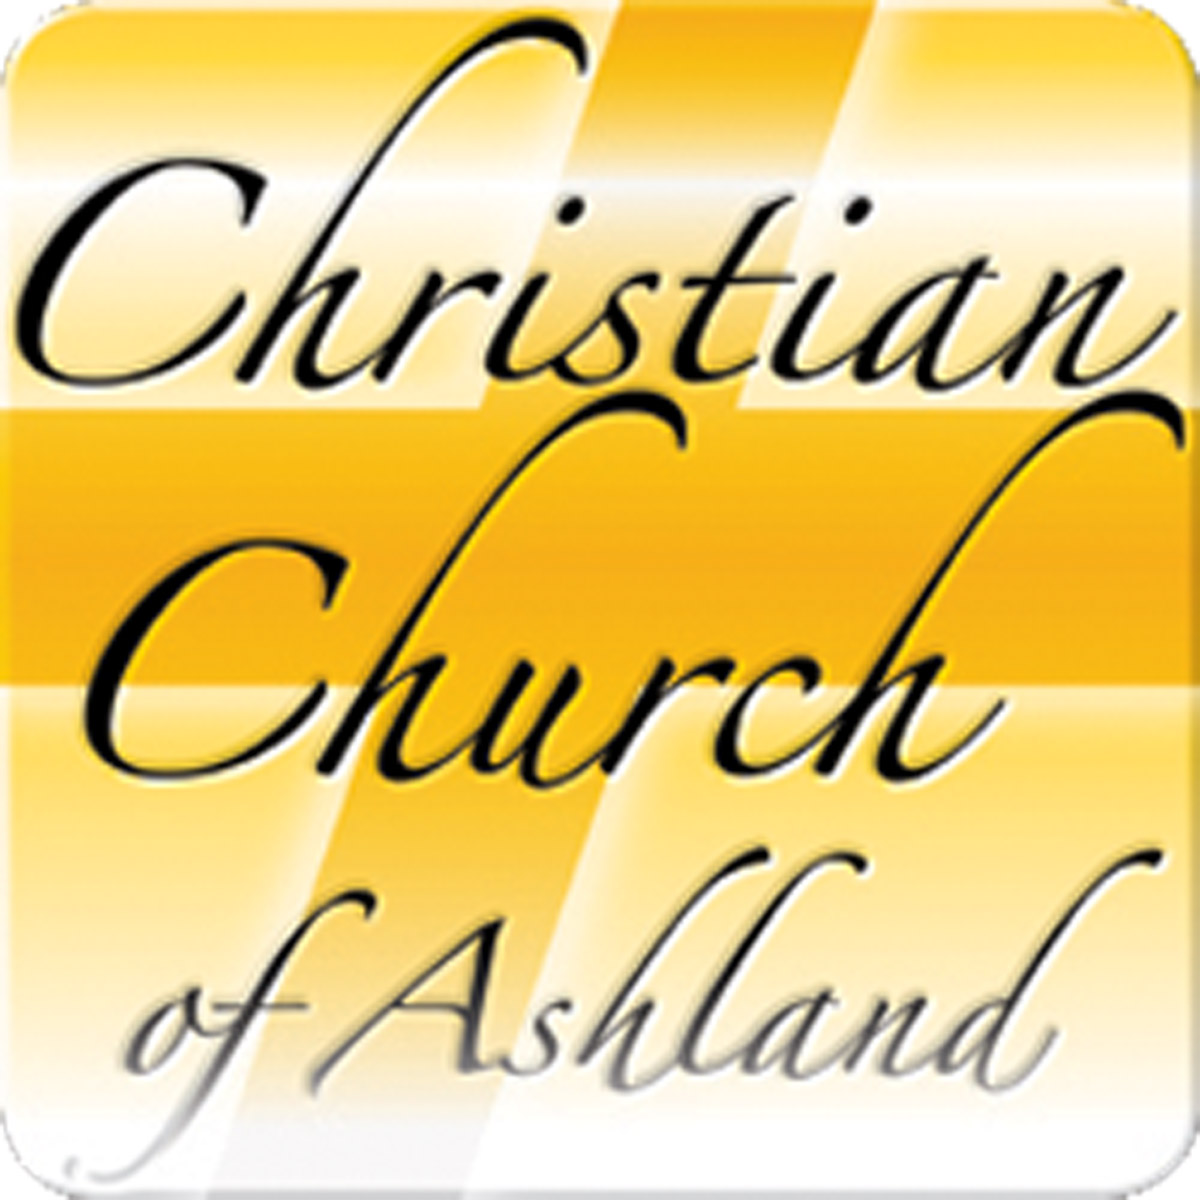 Sermons - Christian Church of Ashland